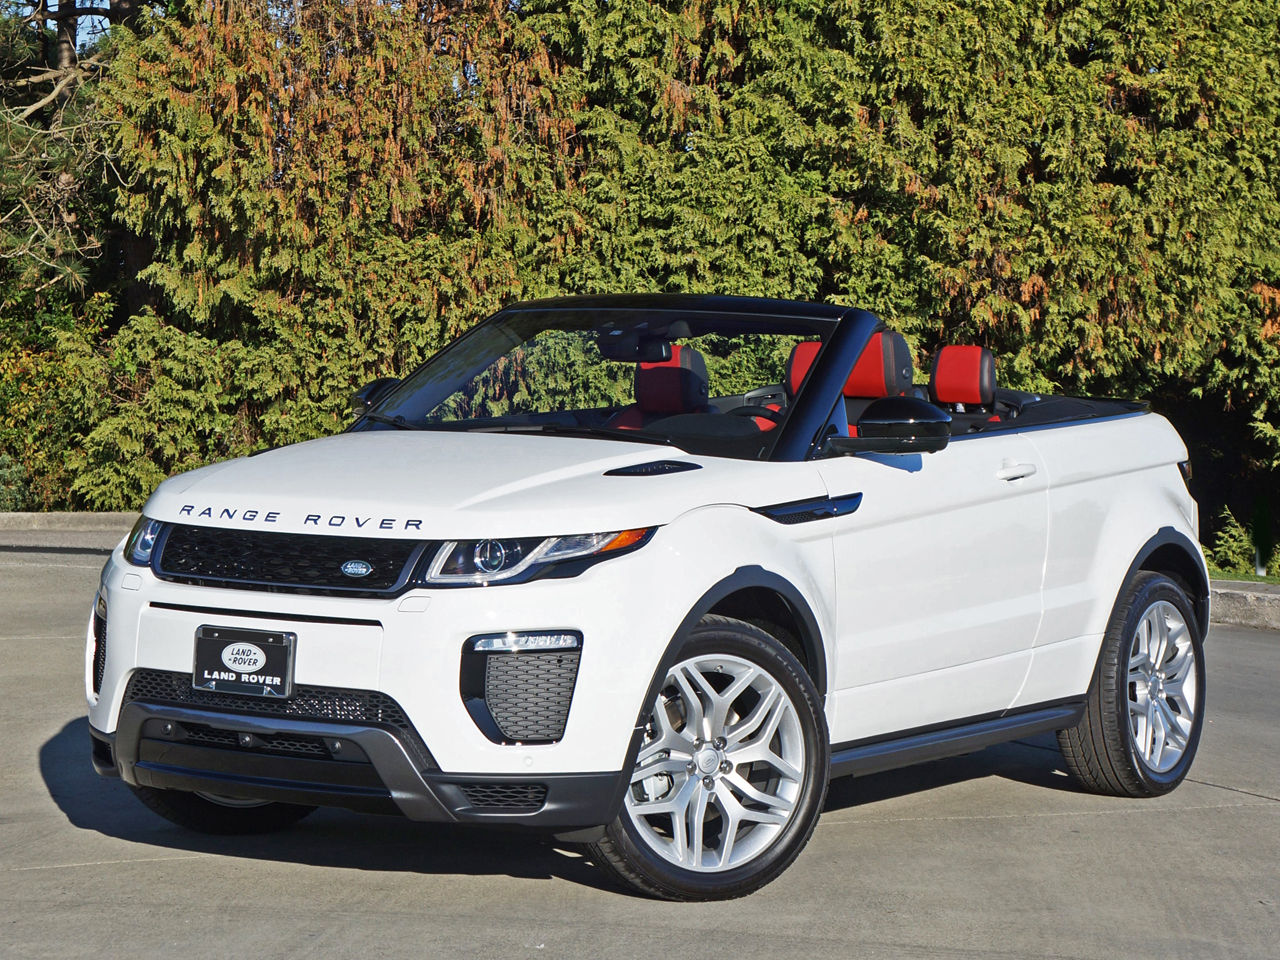 2017 Range Rover Evoque Convertible Road Test Review